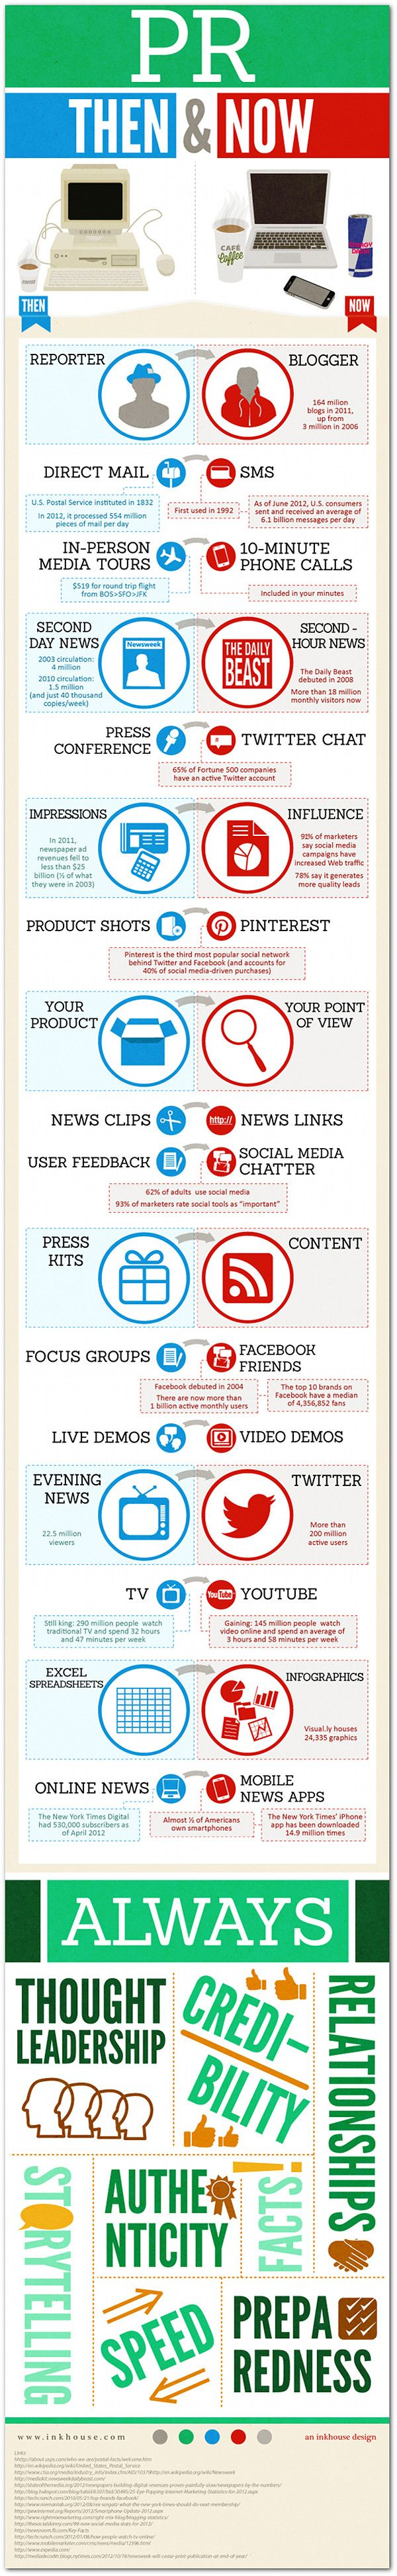 How the PR industry of yesteryear compares with today #infographic